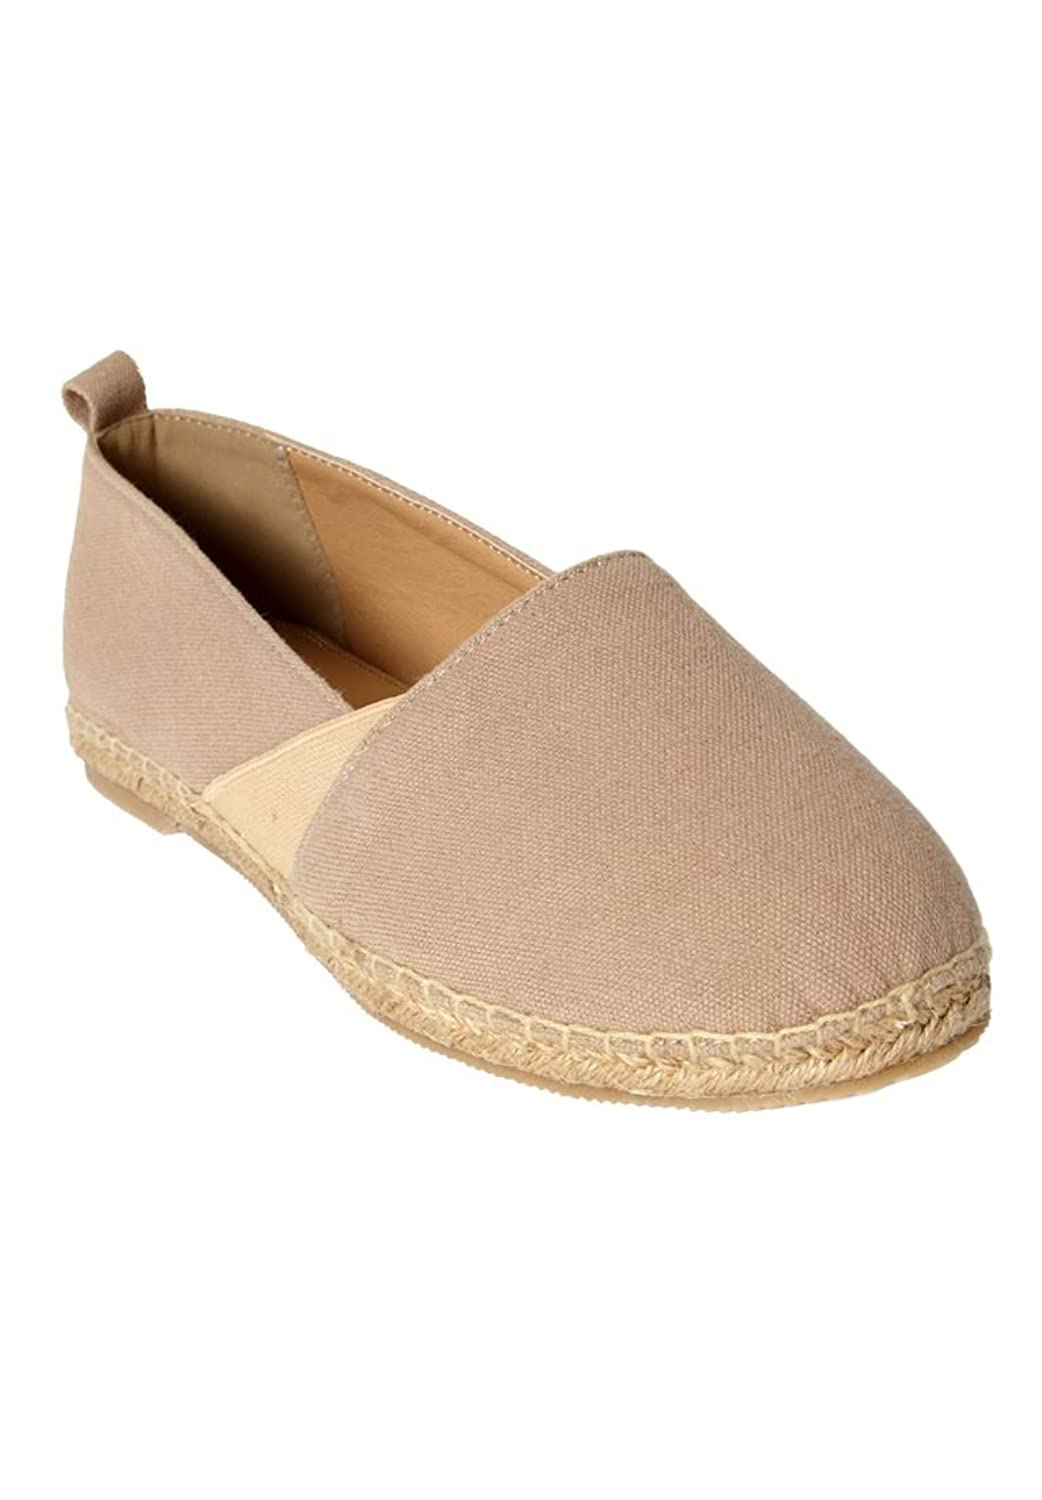 Comfortview Women's Plus Size Ginger Espadrille Flats Natural,7 1/2 M